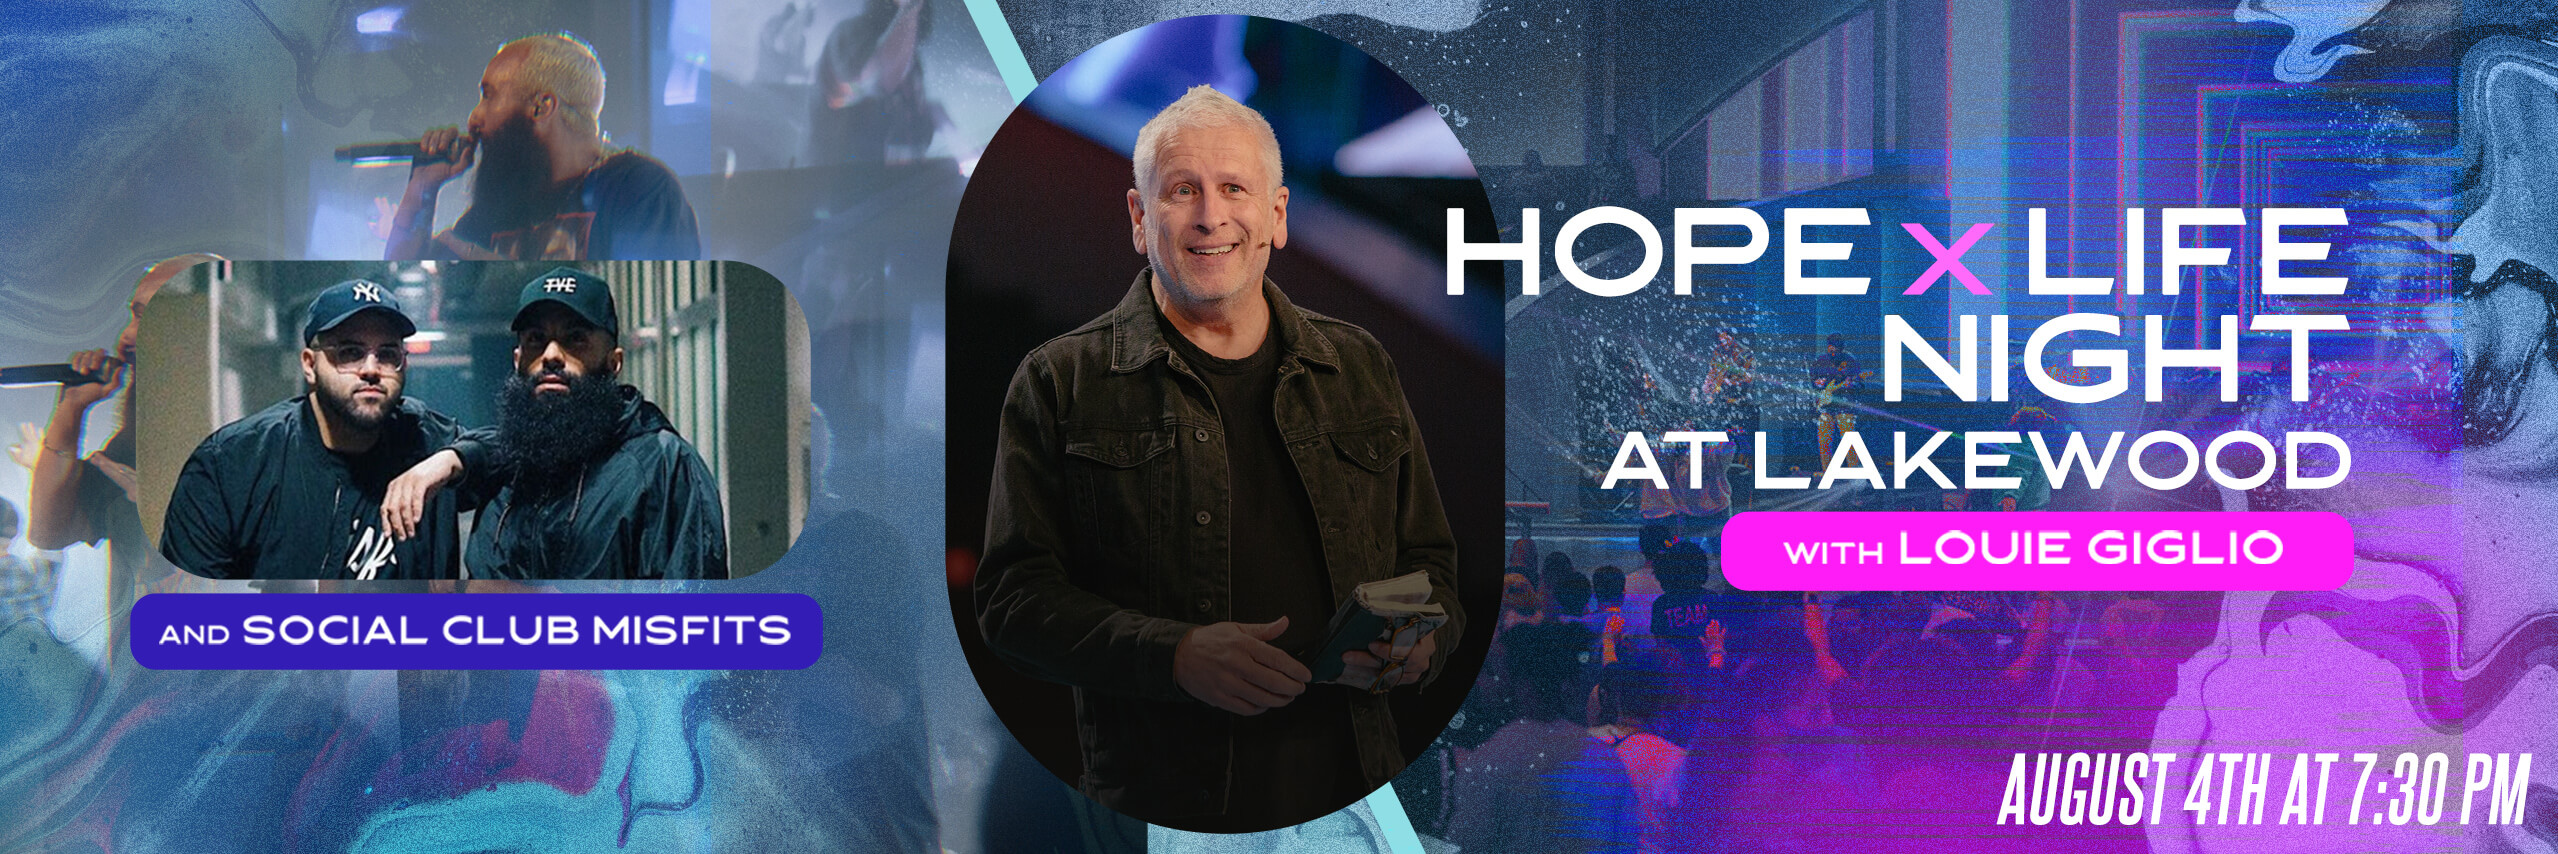 Hope and Life Night at Lakewood with Louie Giglio and Social Club Misfits